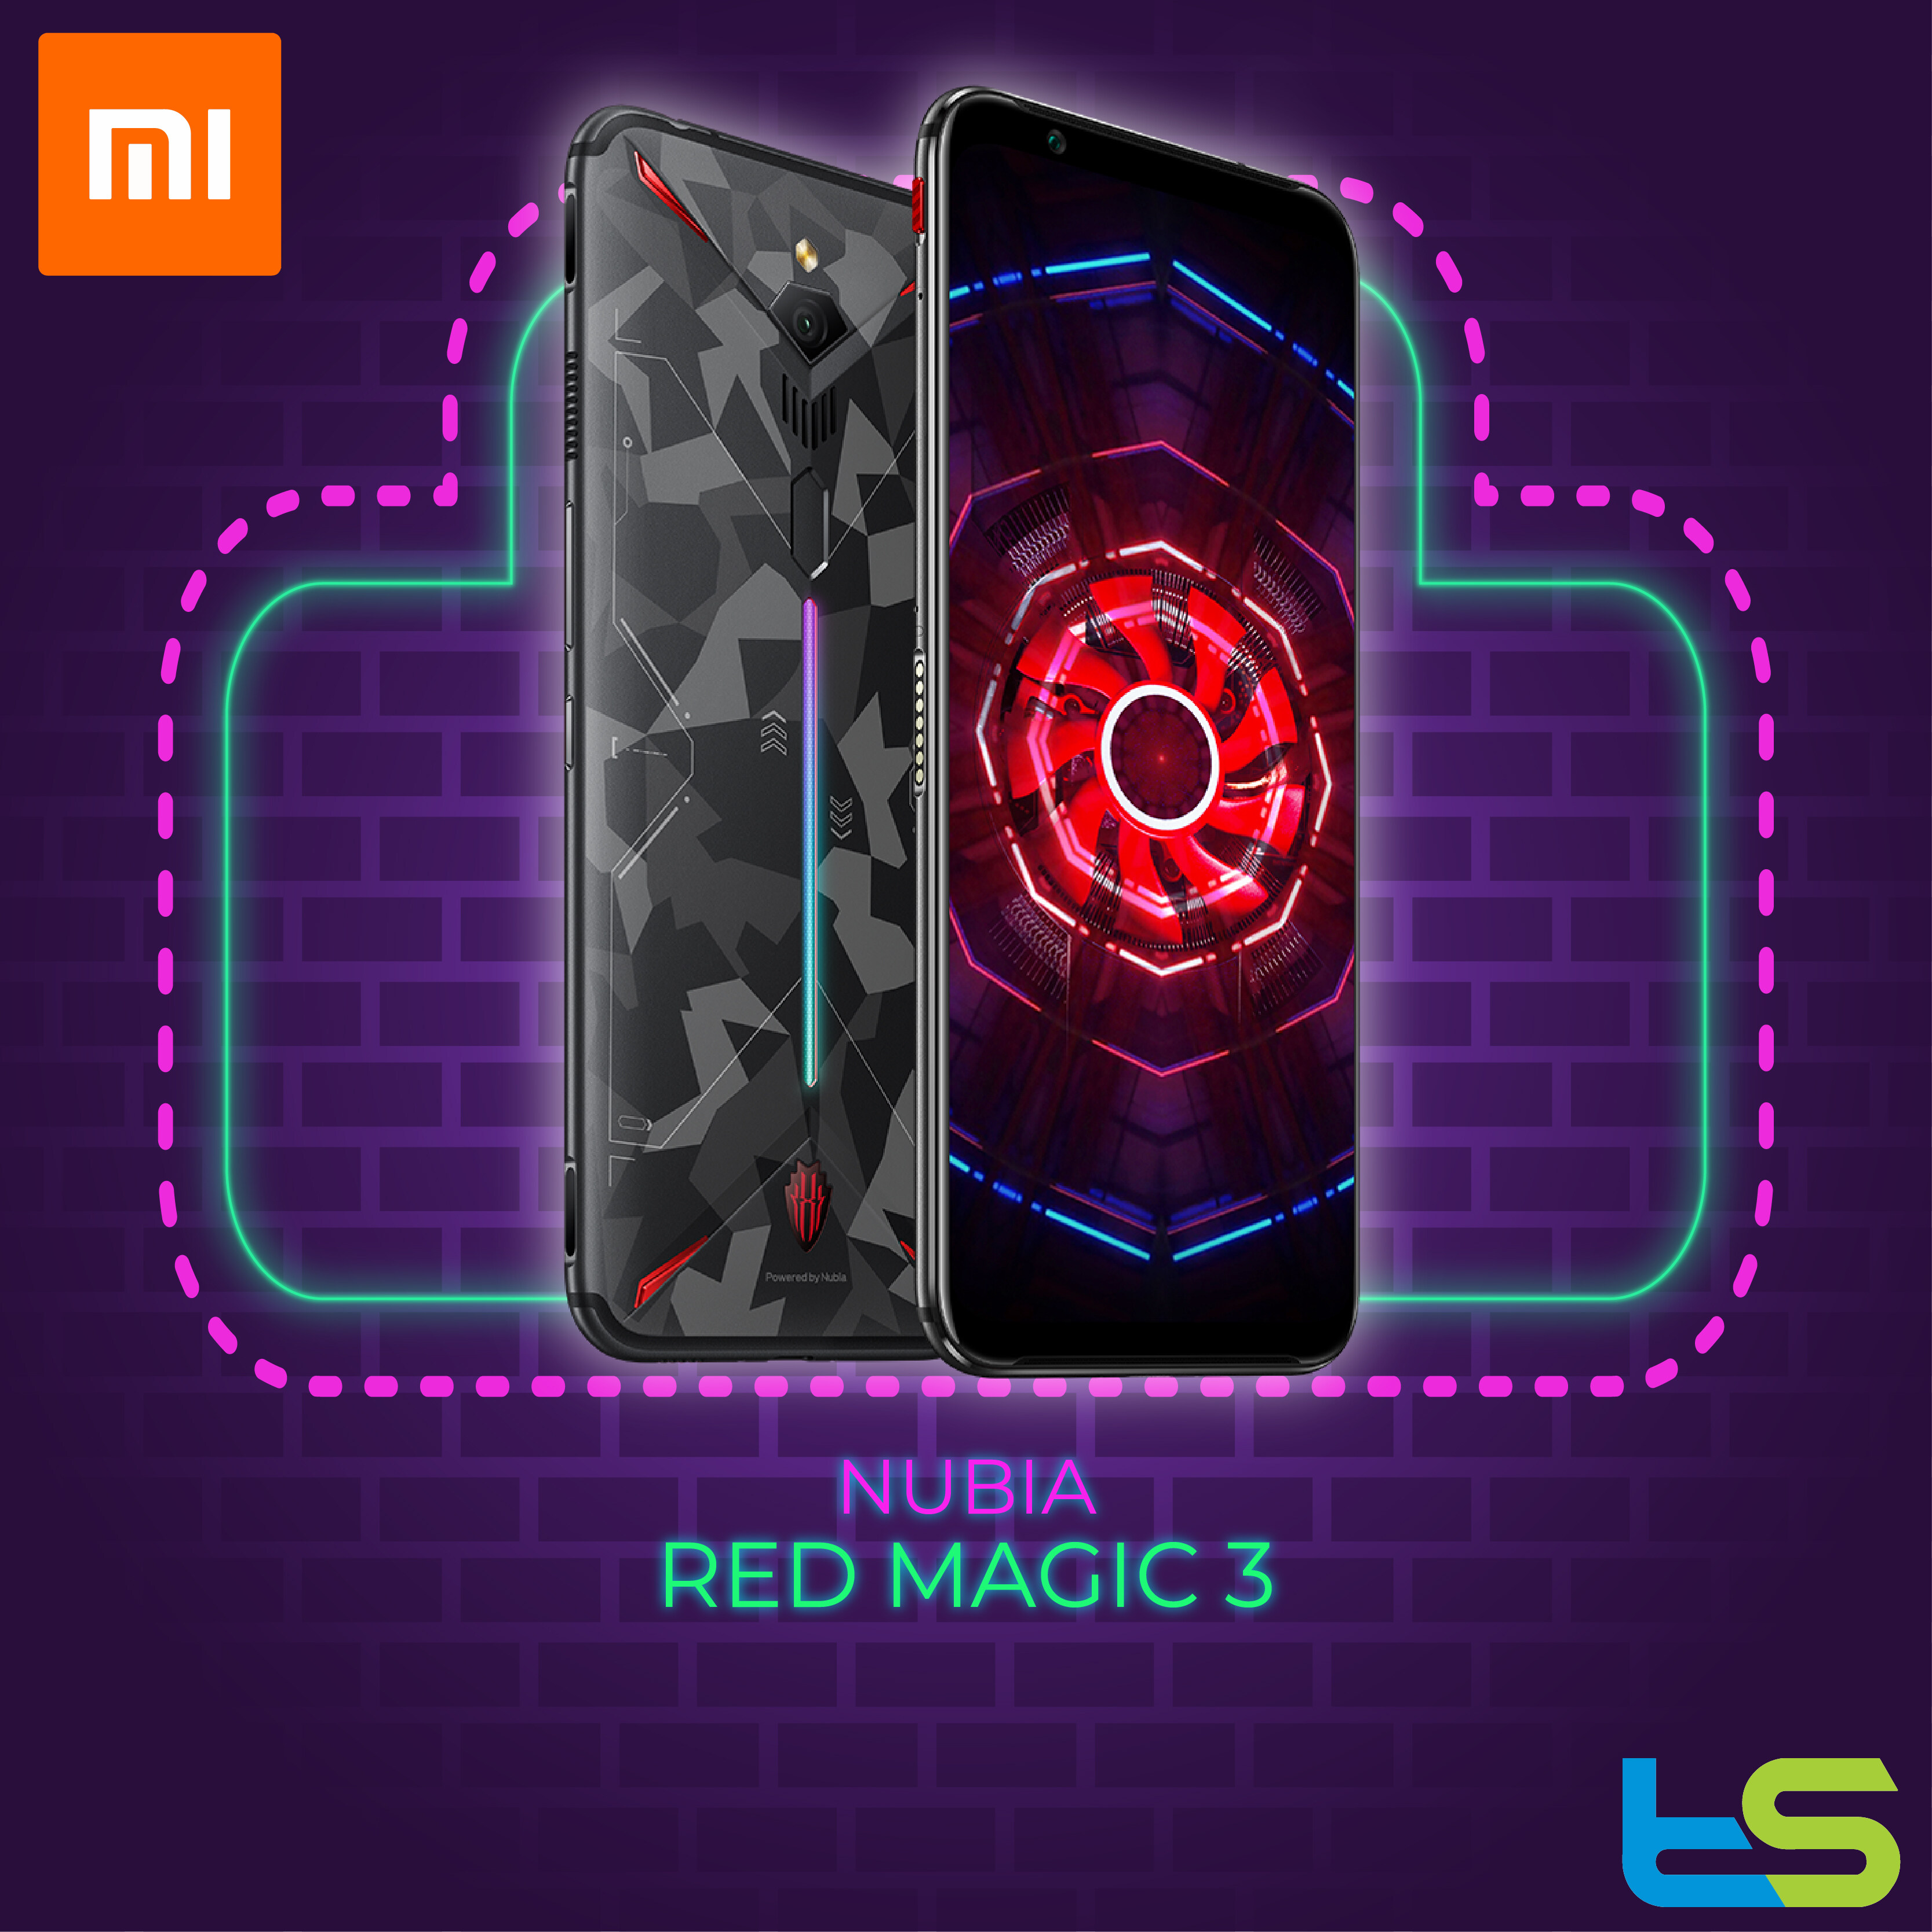 Nubia Red Magic 3 12+256GB [1 Year Local Malaysia Warranty]